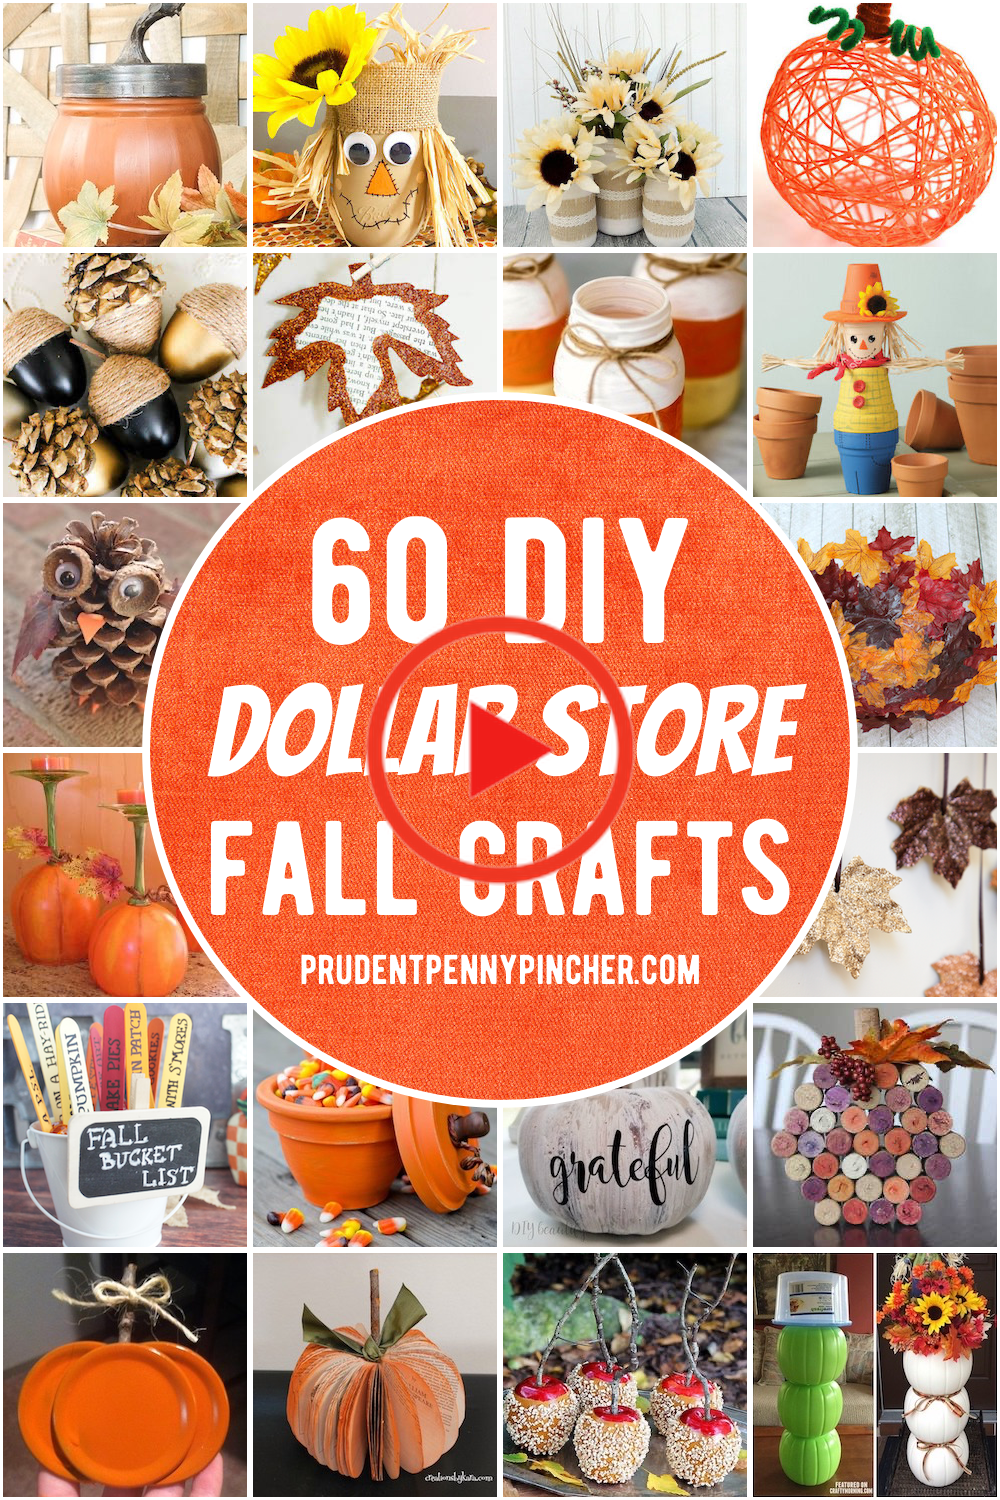 20+ Dollar store craft ideas for fall ideas in 2021